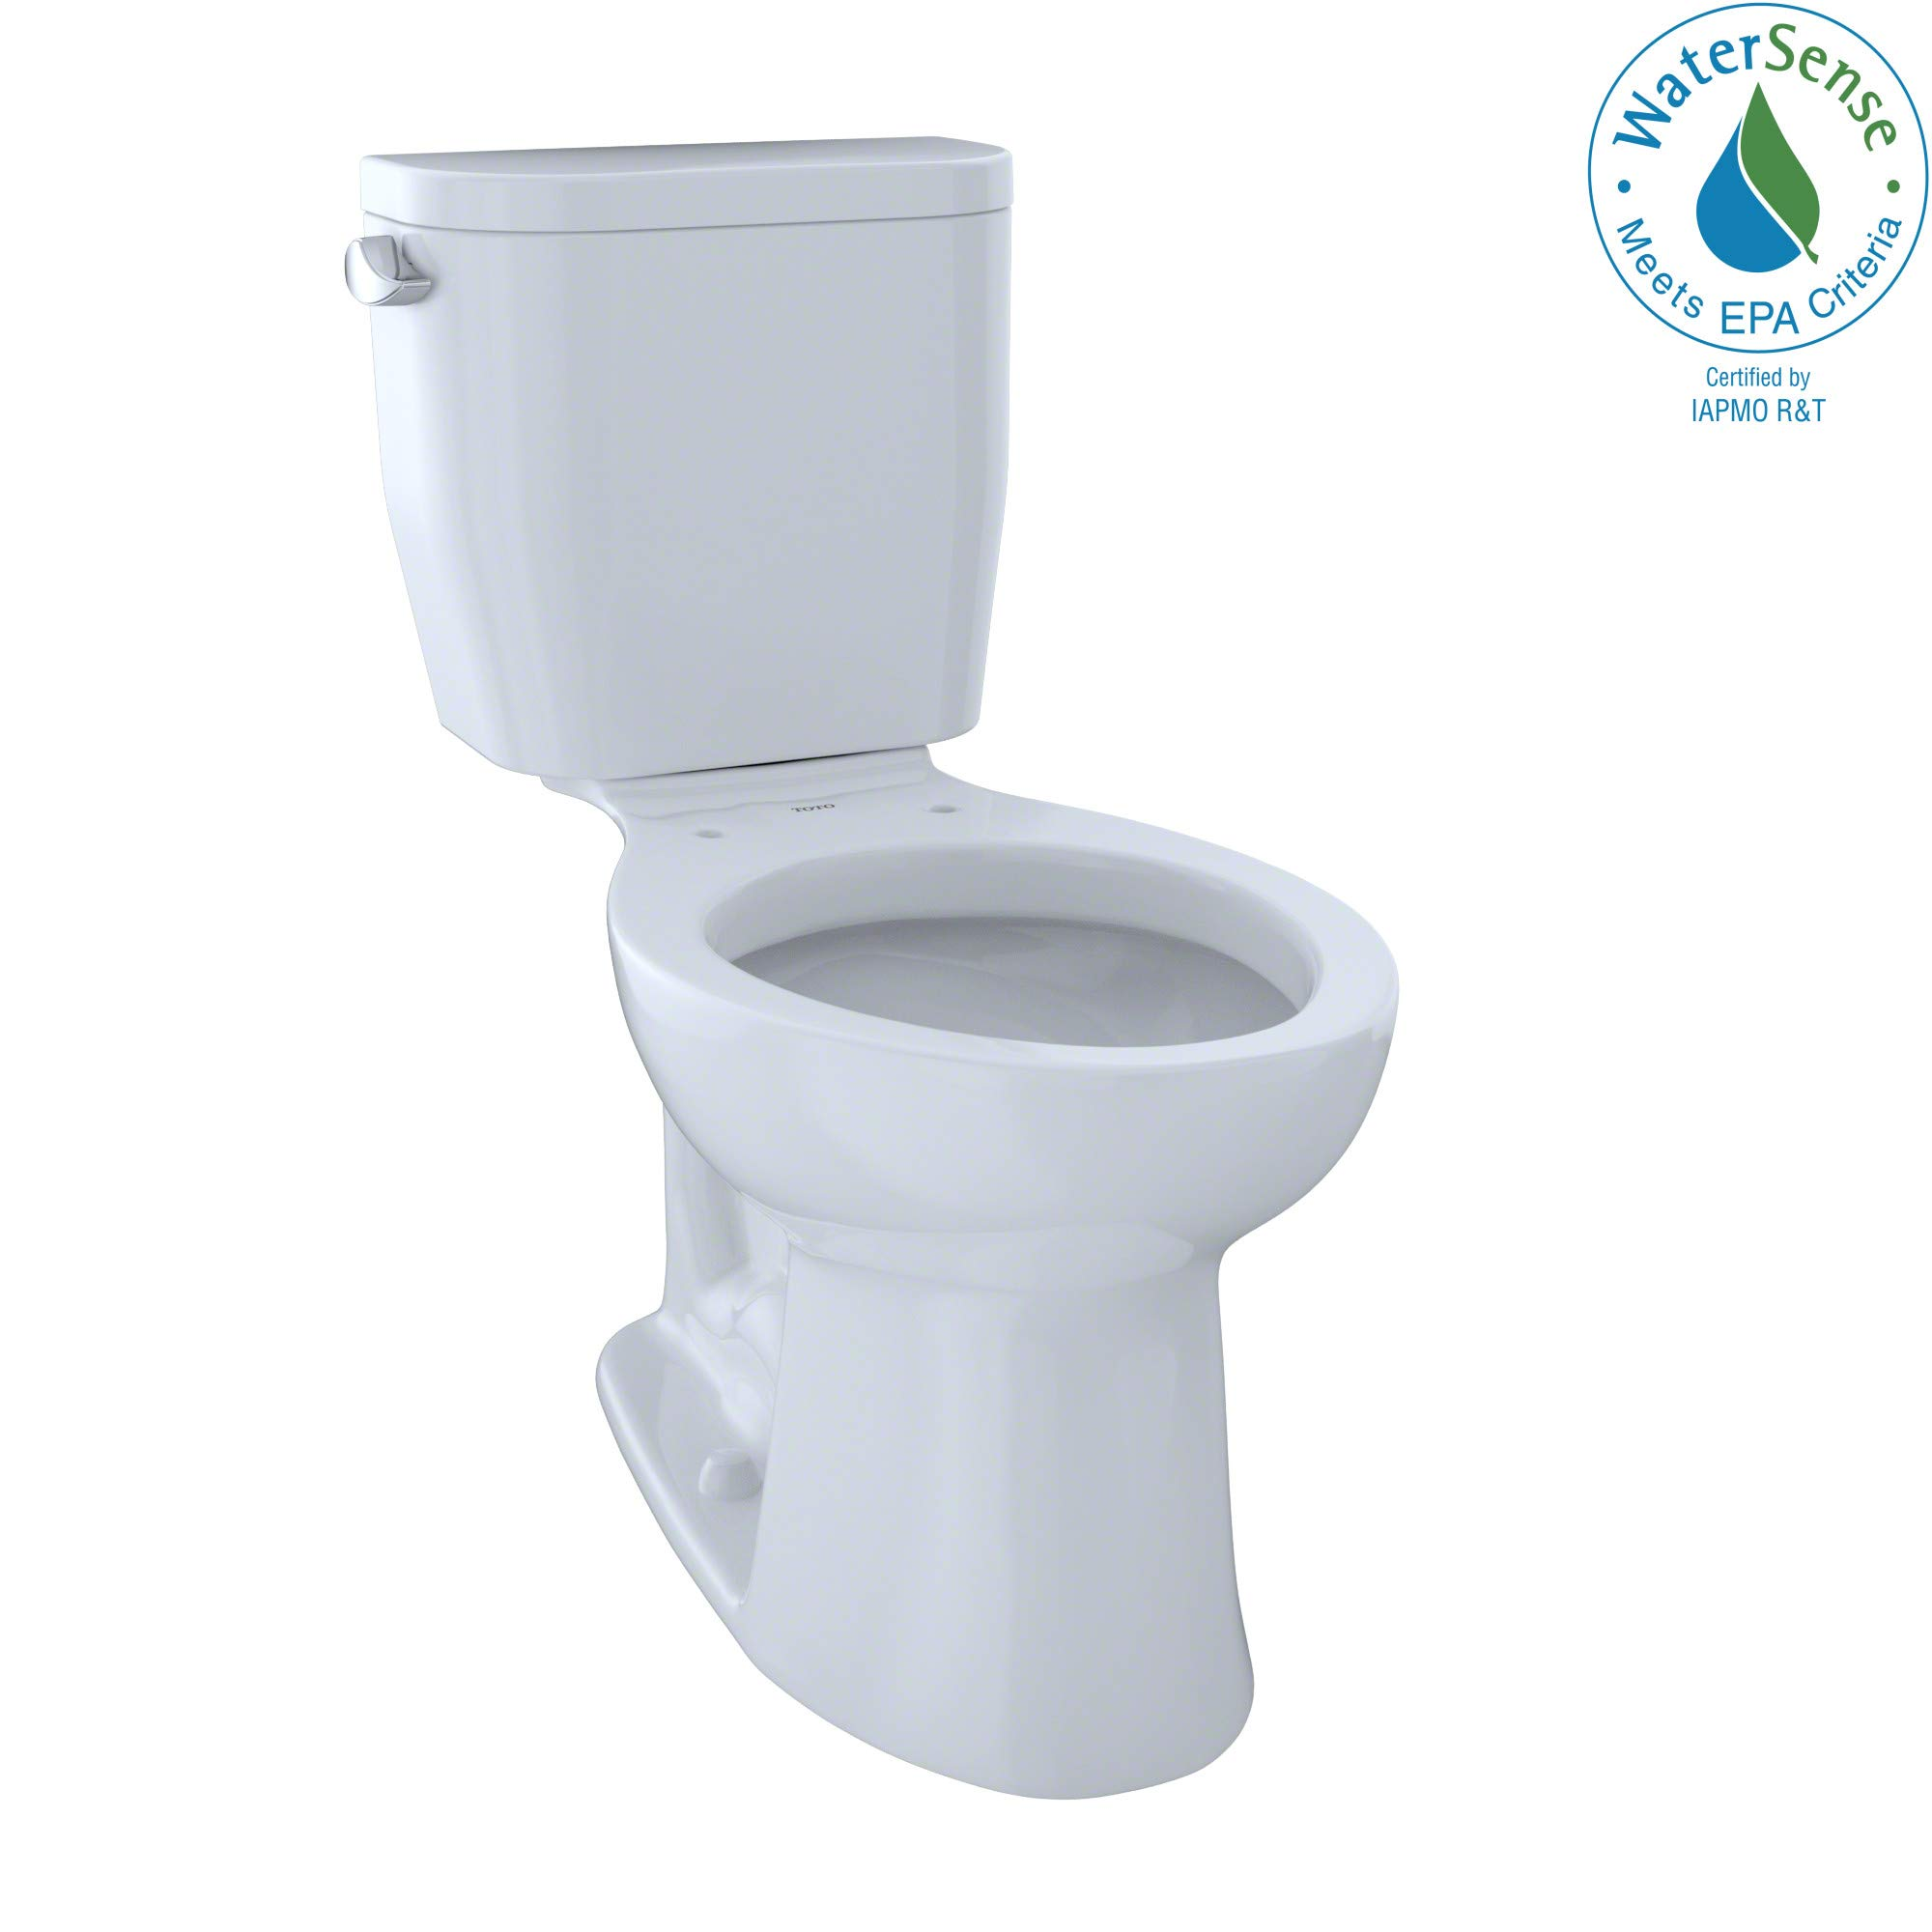 TOTO CST244EF#01 Entrada Two-Piece Elongated 1.28 GPF Universal Height Toilet, Cotton White by TOTO